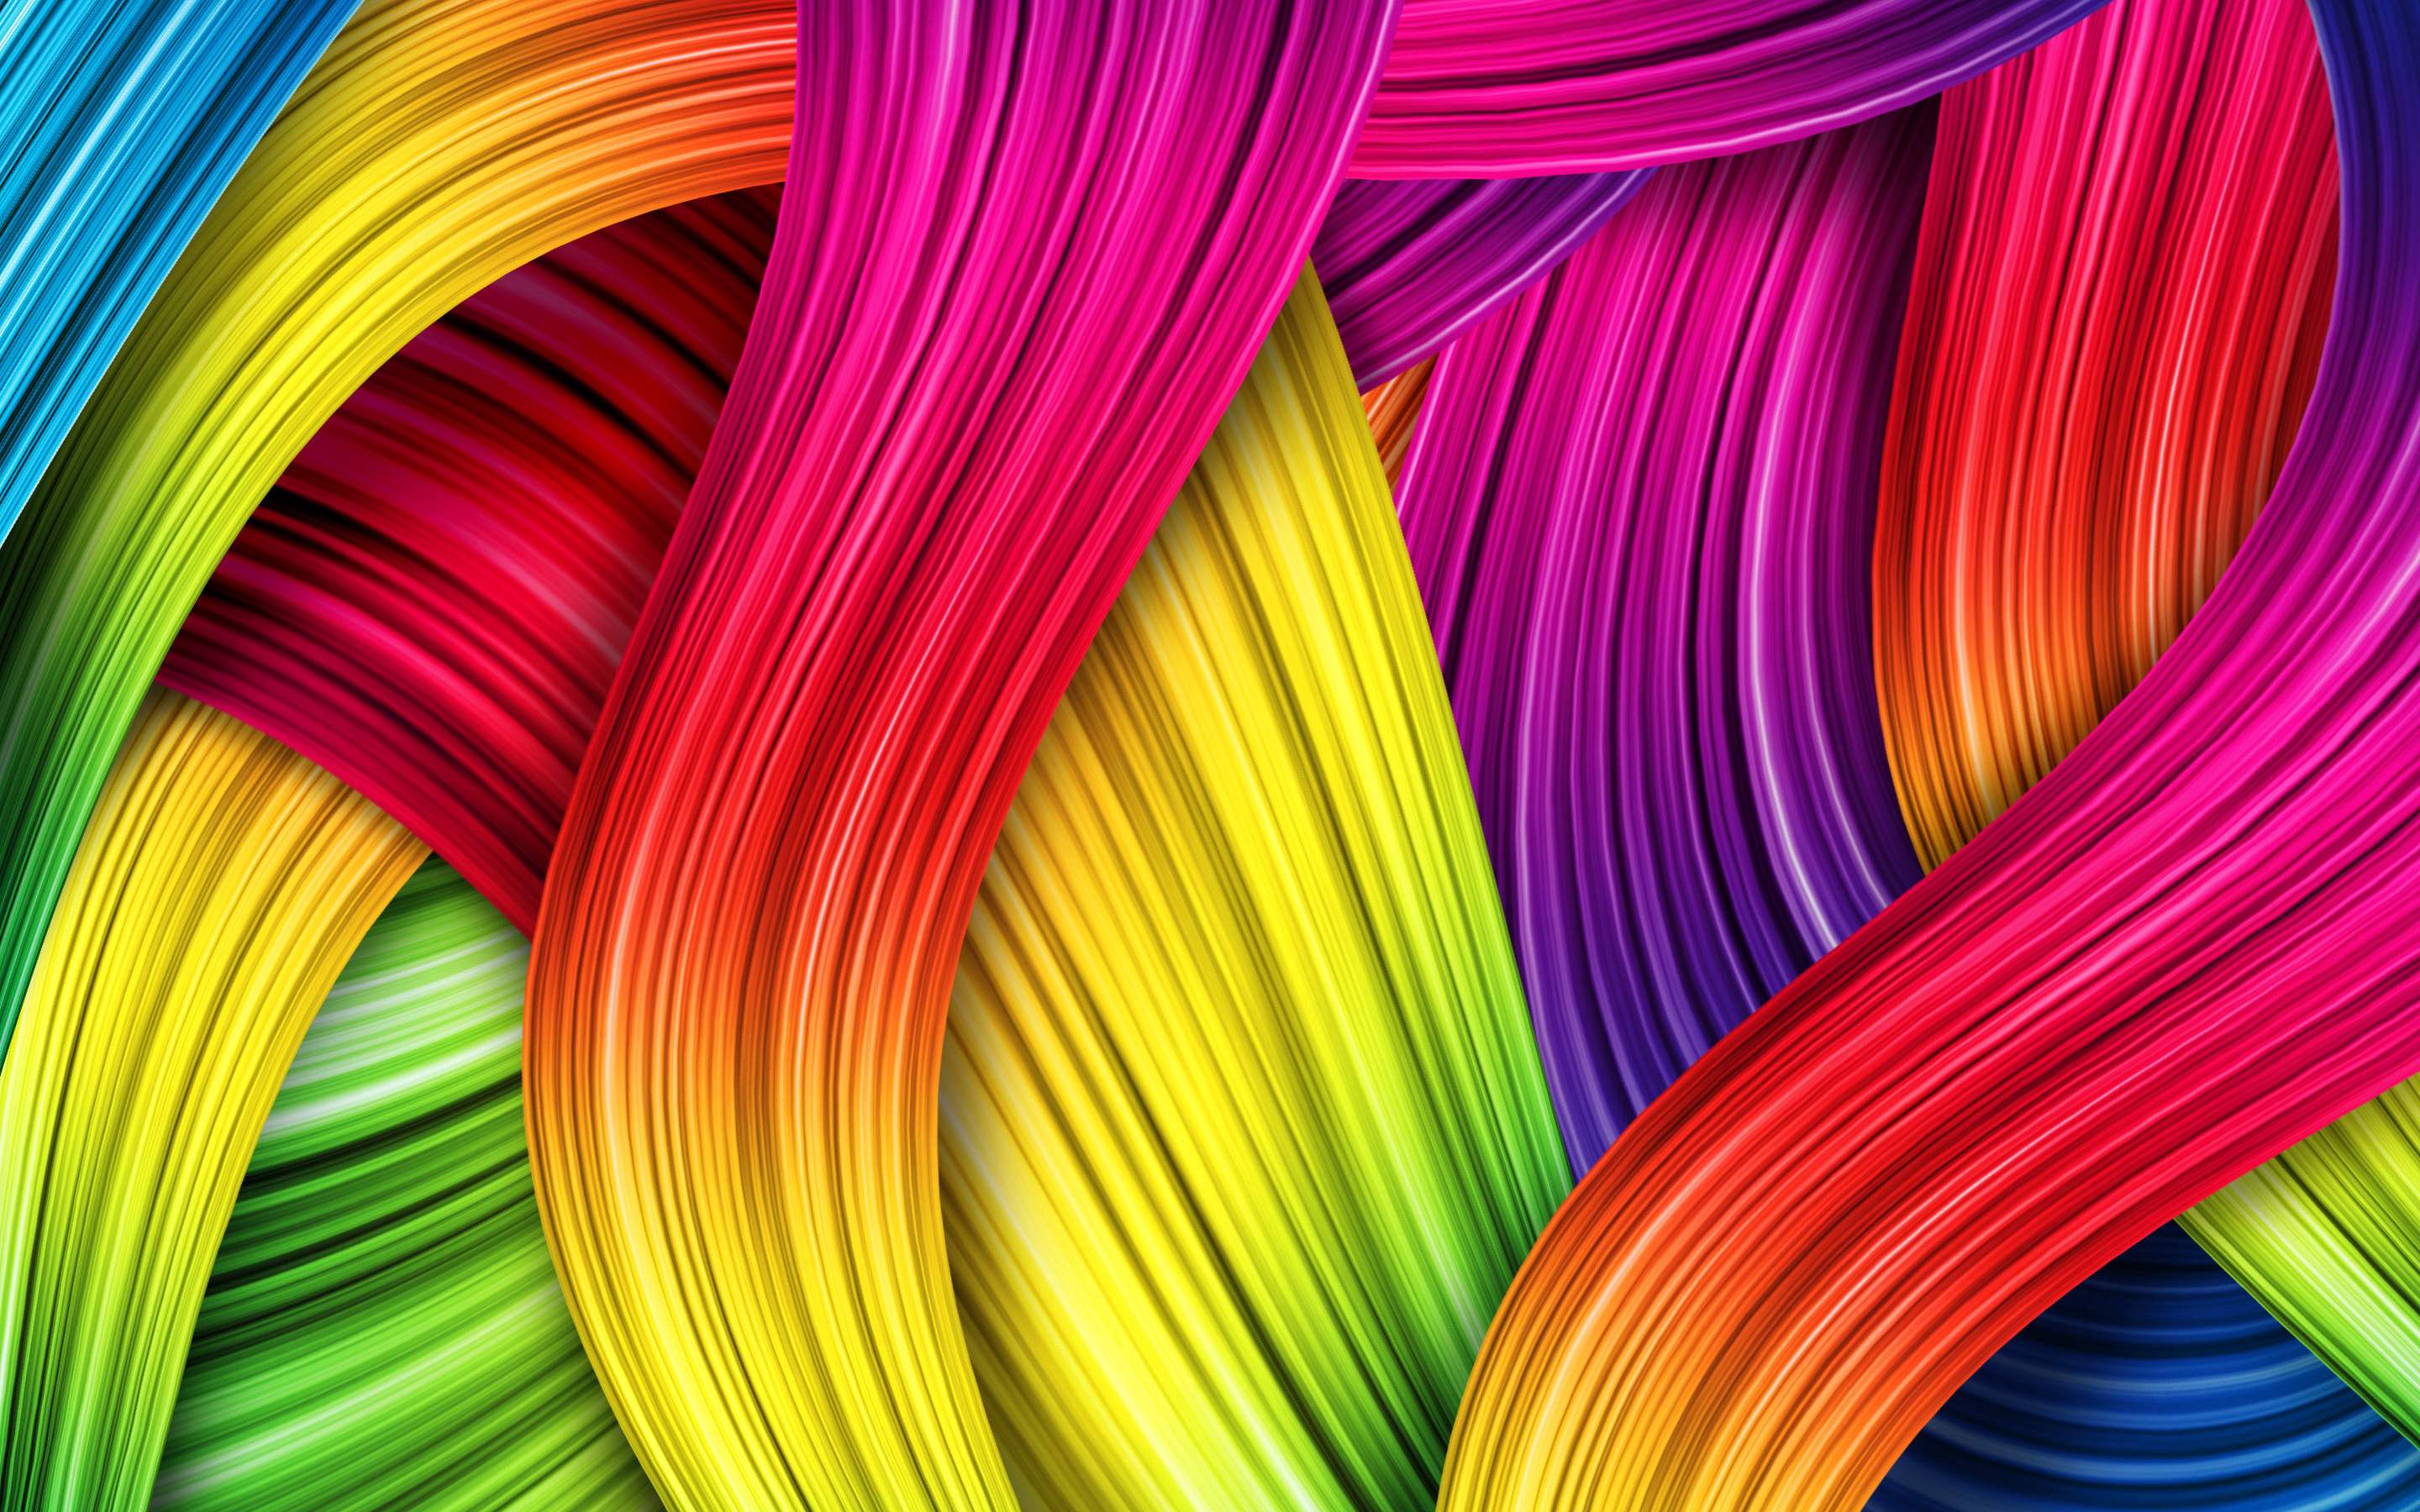 69+ abstract color wallpapers on wallpaperplay